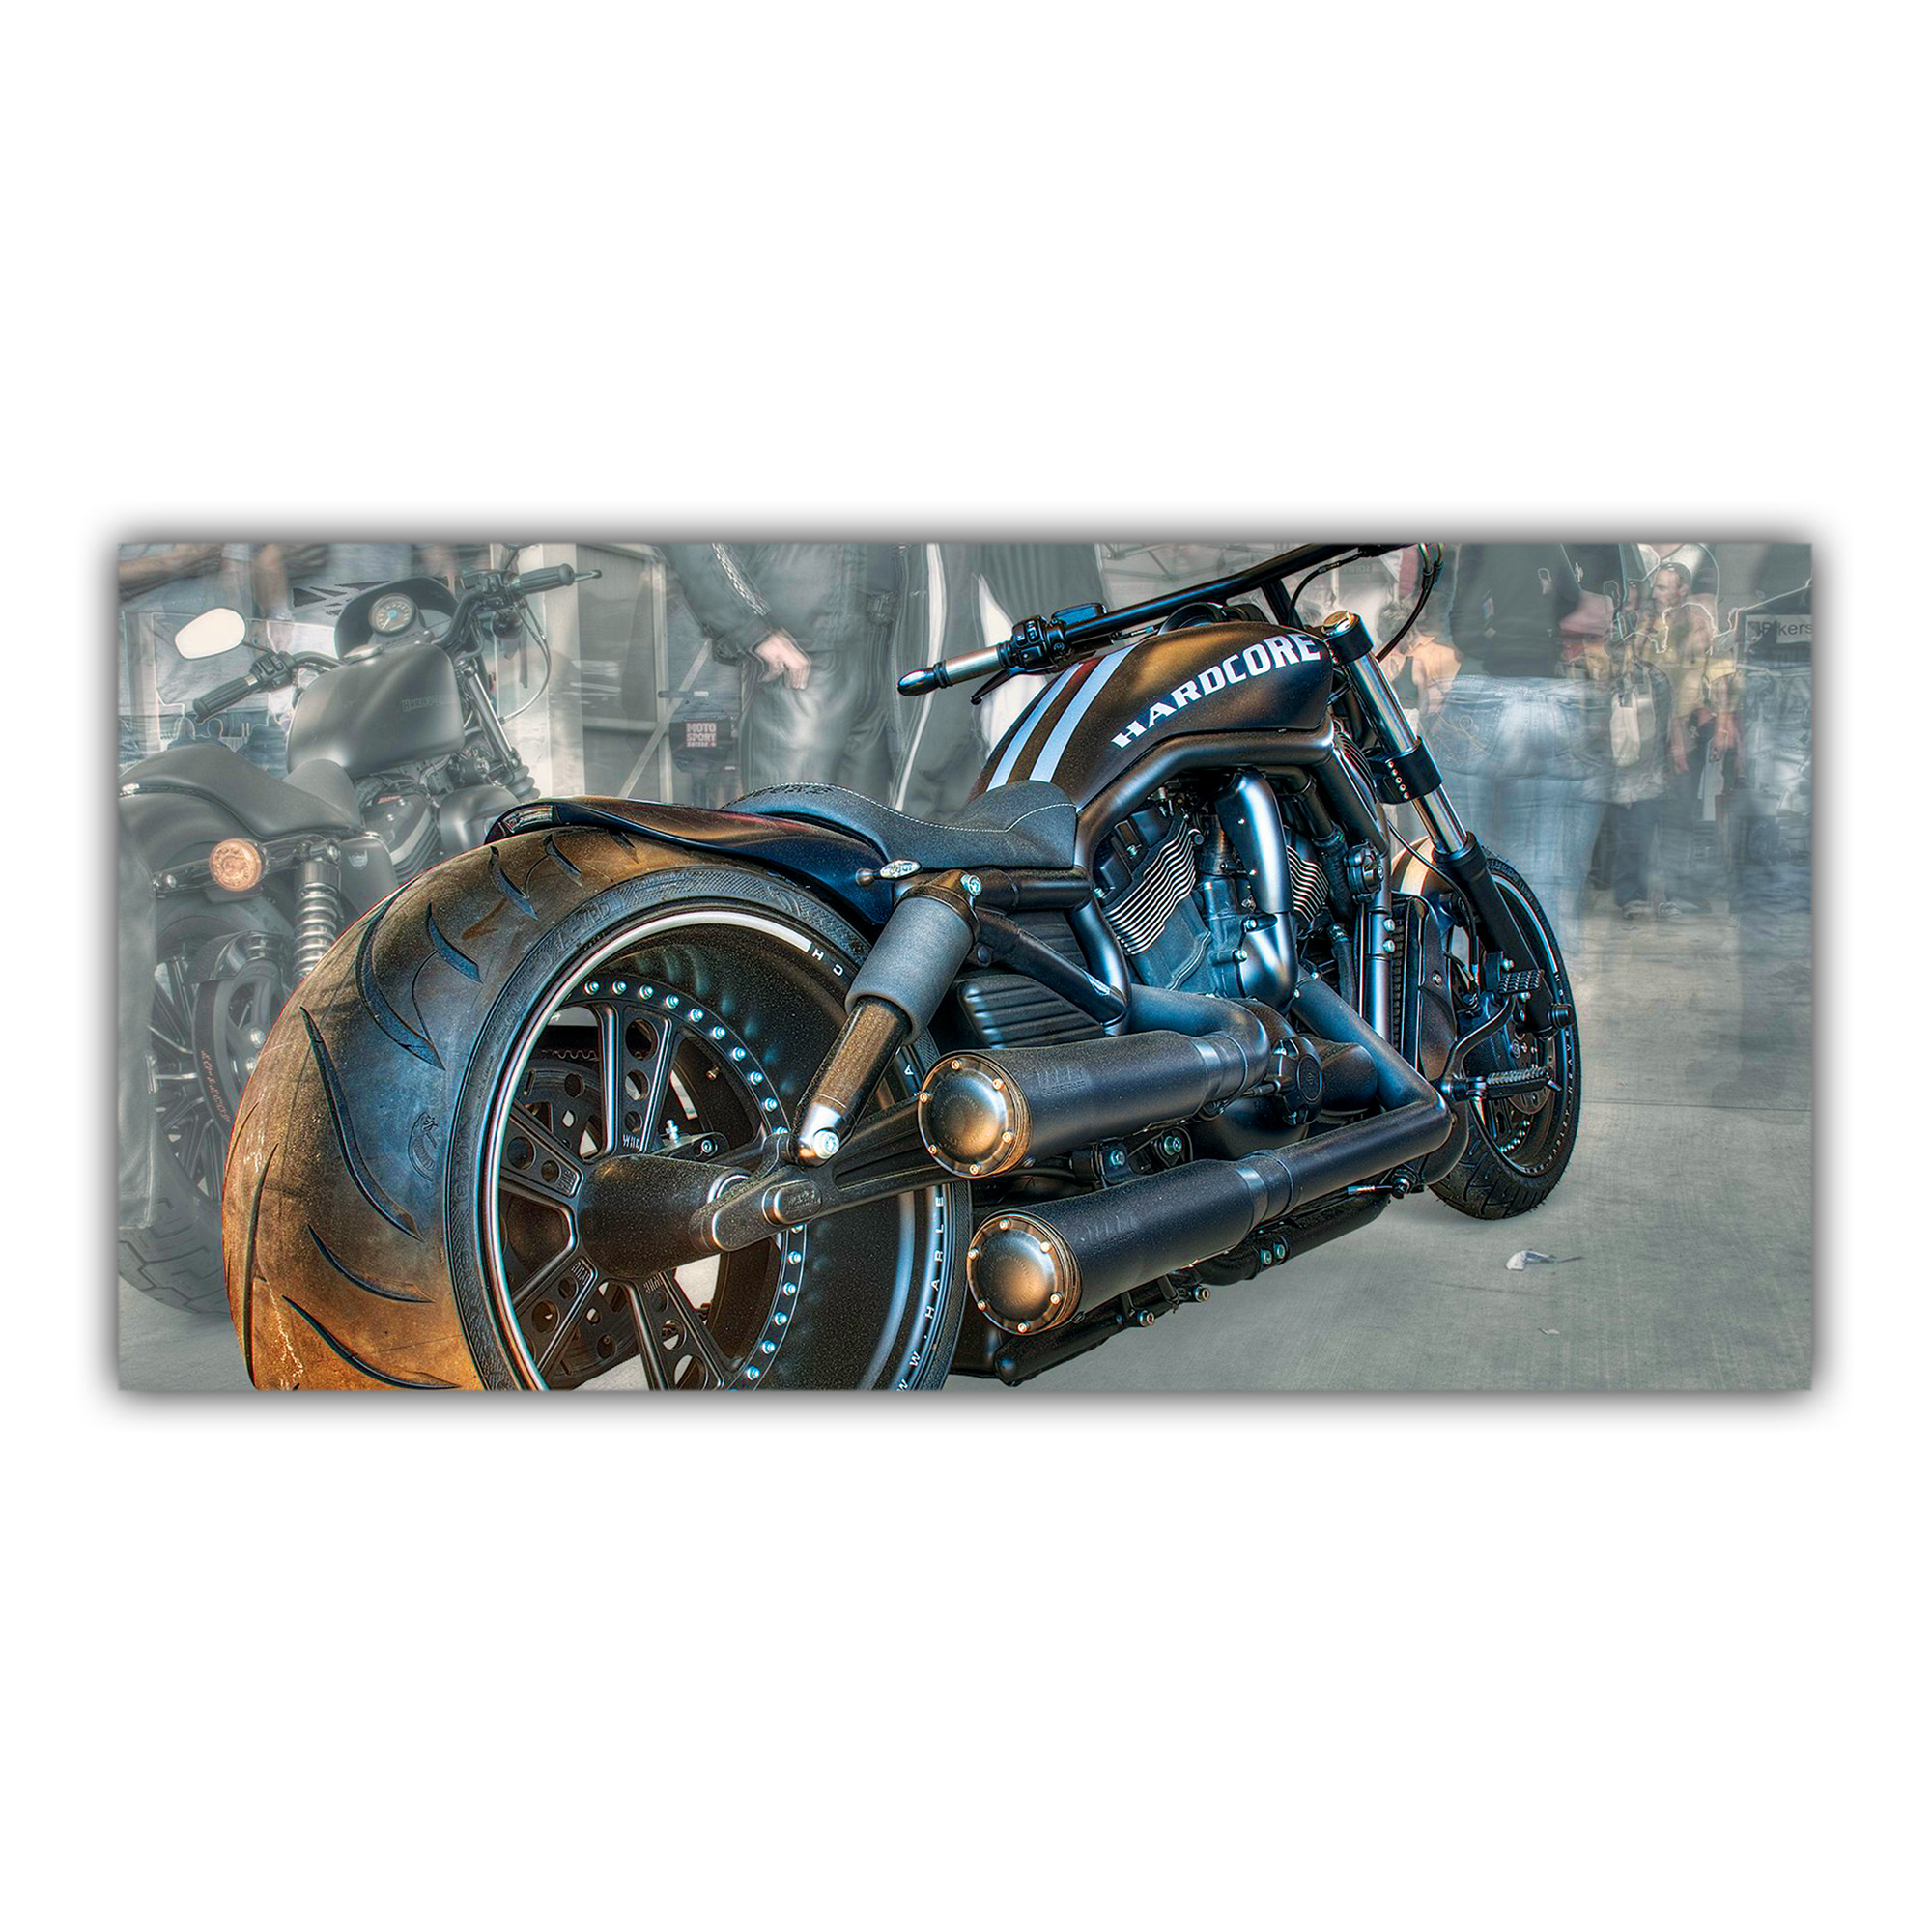 harley davidson custom rassemblement plaque d corative imprim e. Black Bedroom Furniture Sets. Home Design Ideas